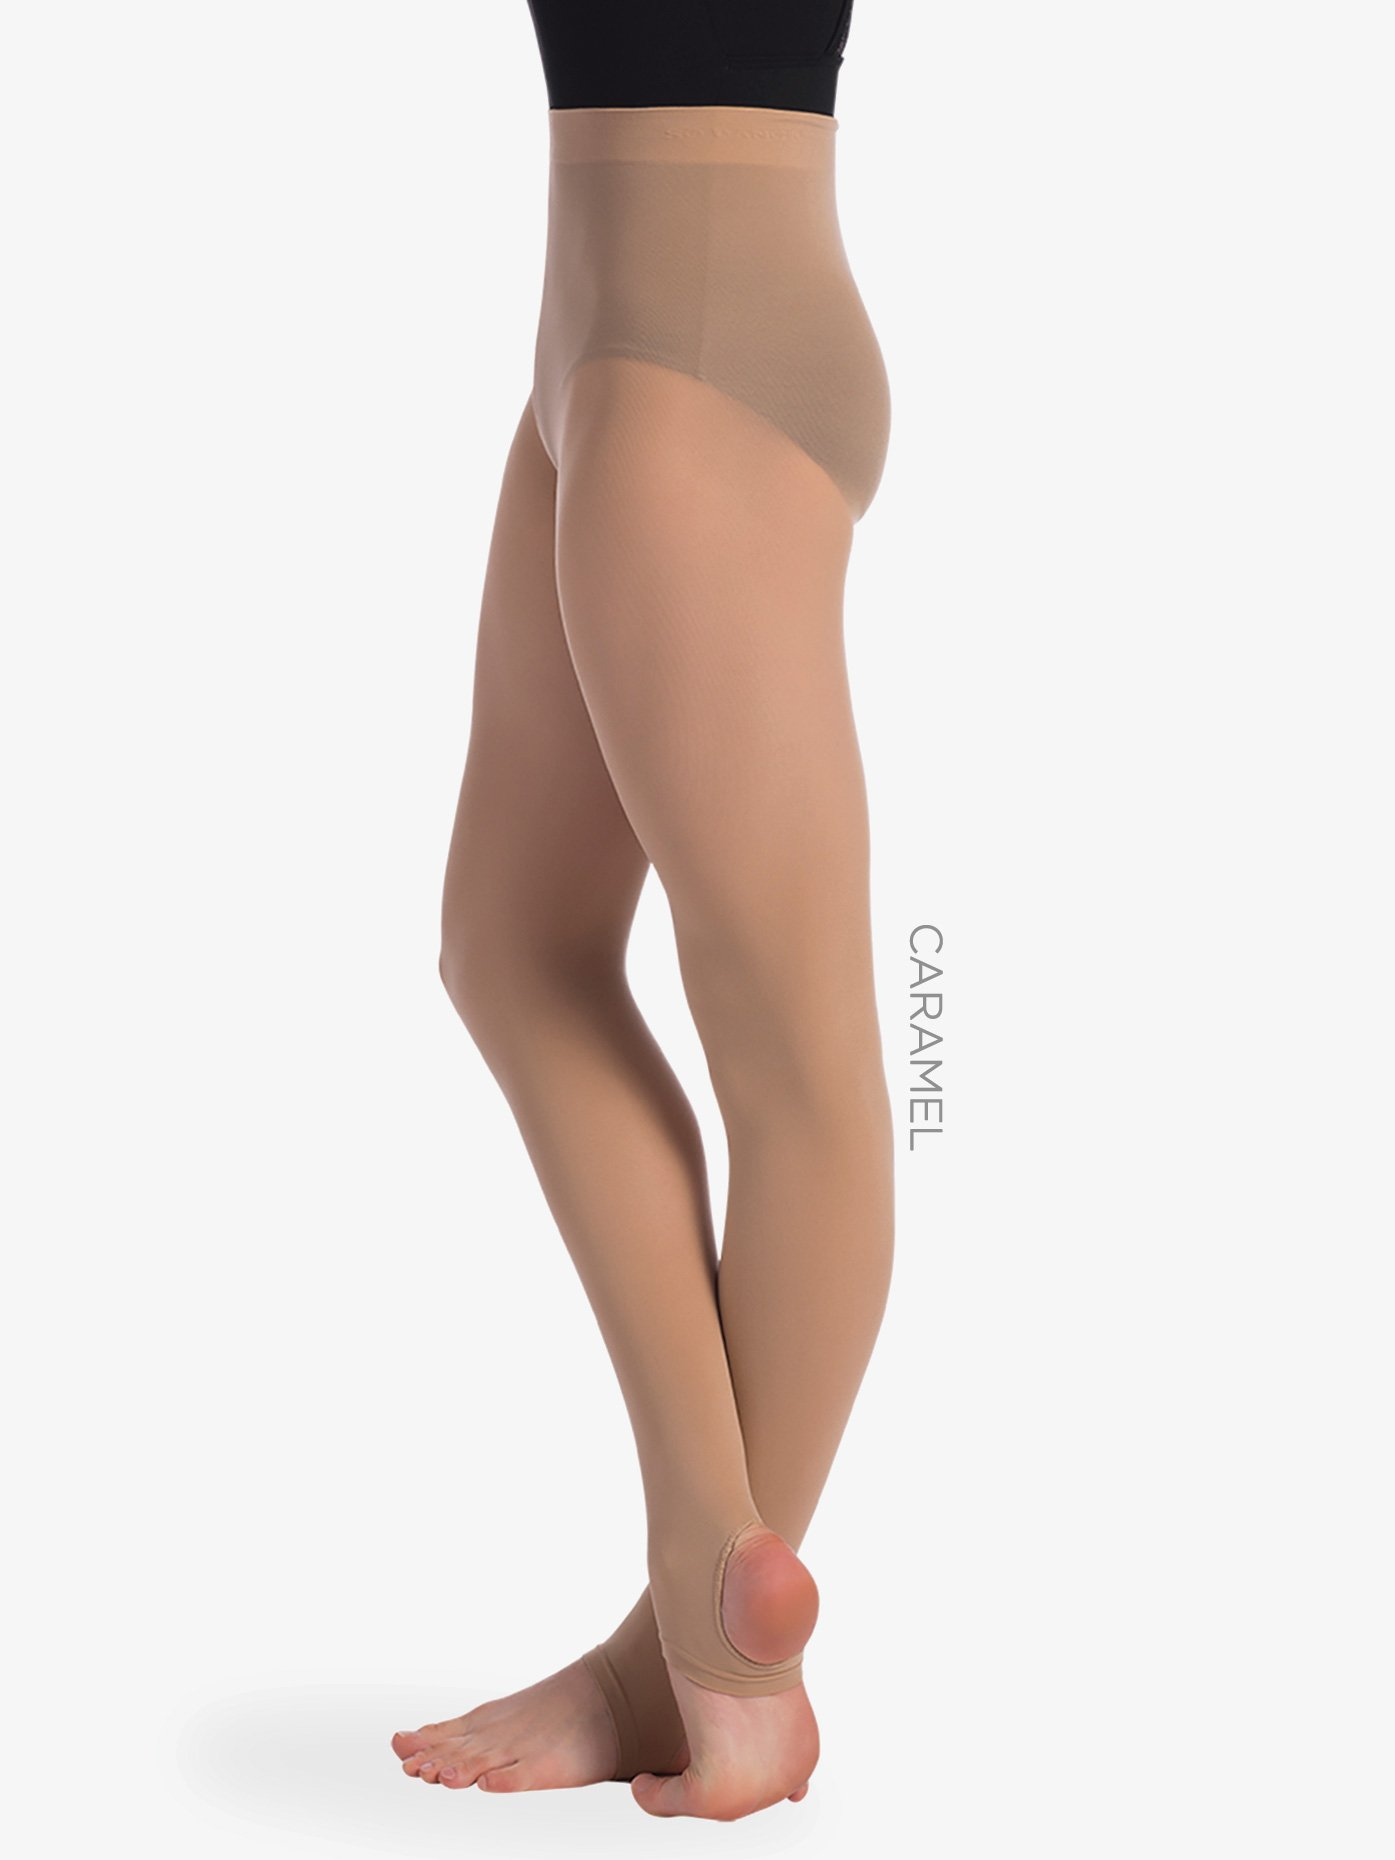 f8b3b565bba8b1 Womens Seamless Stirrup Dance Tights - Style No TS78. Loading zoom